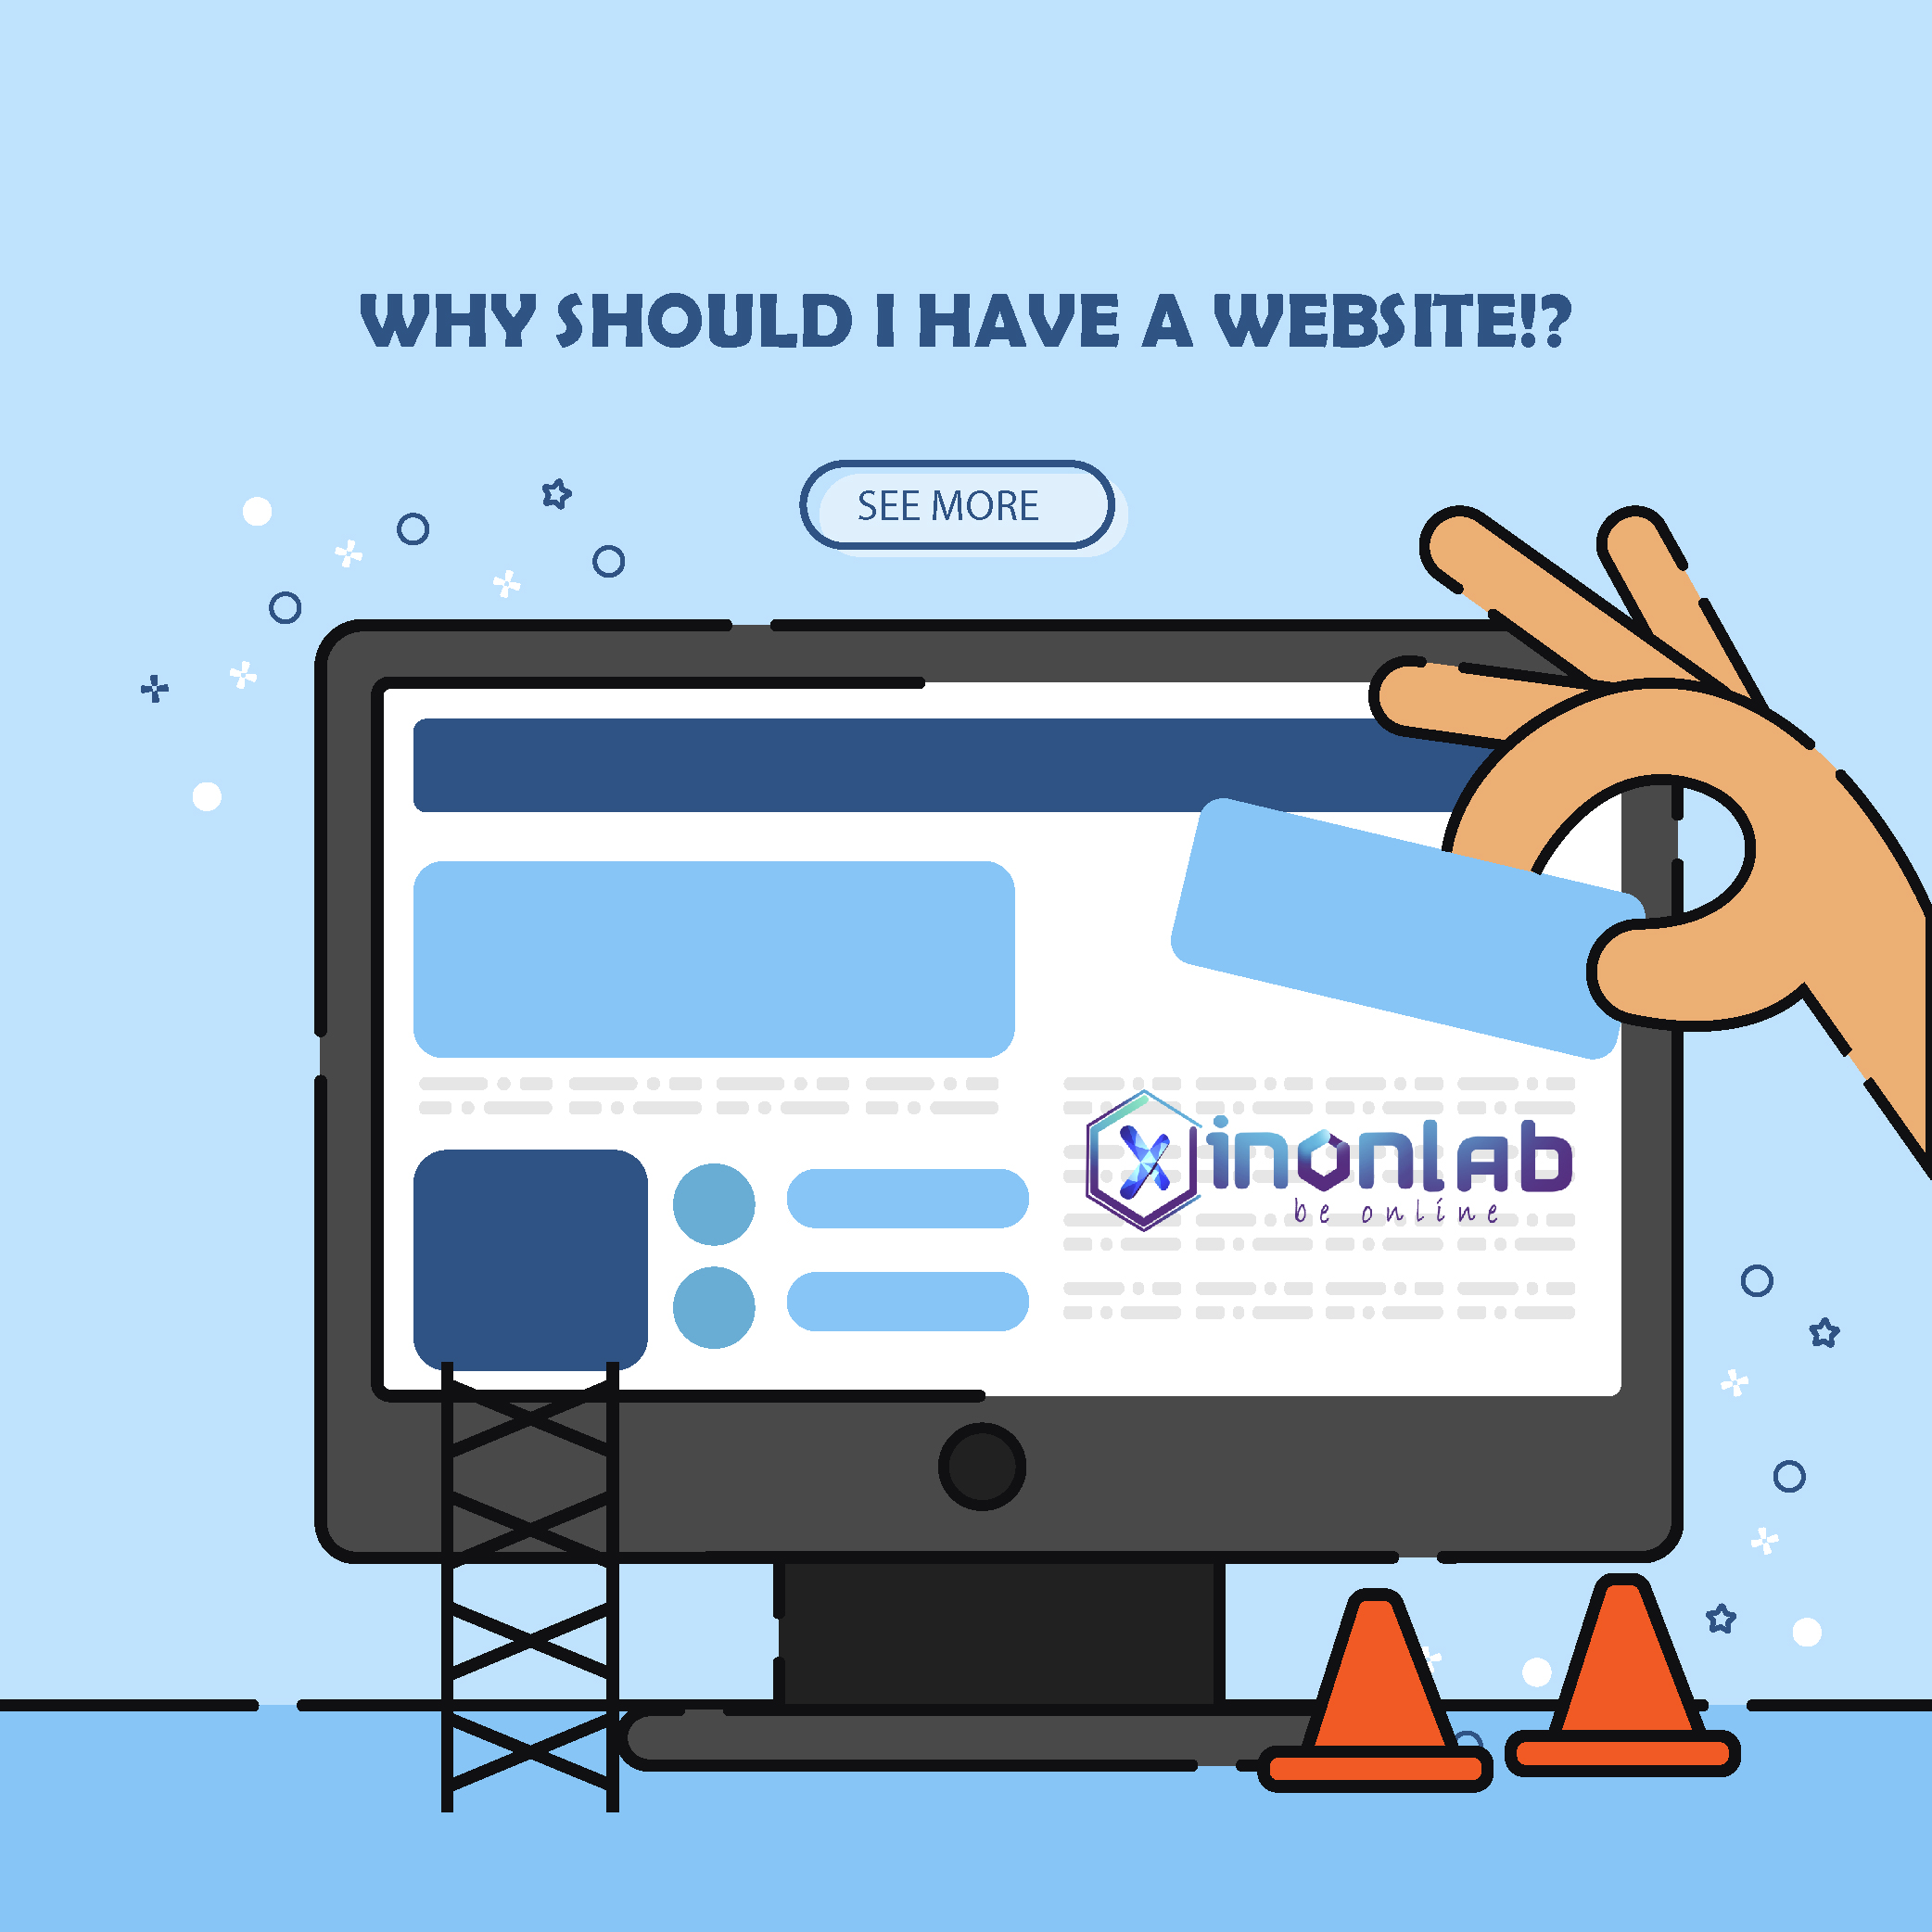 Why Should I Have a Website؟-Image